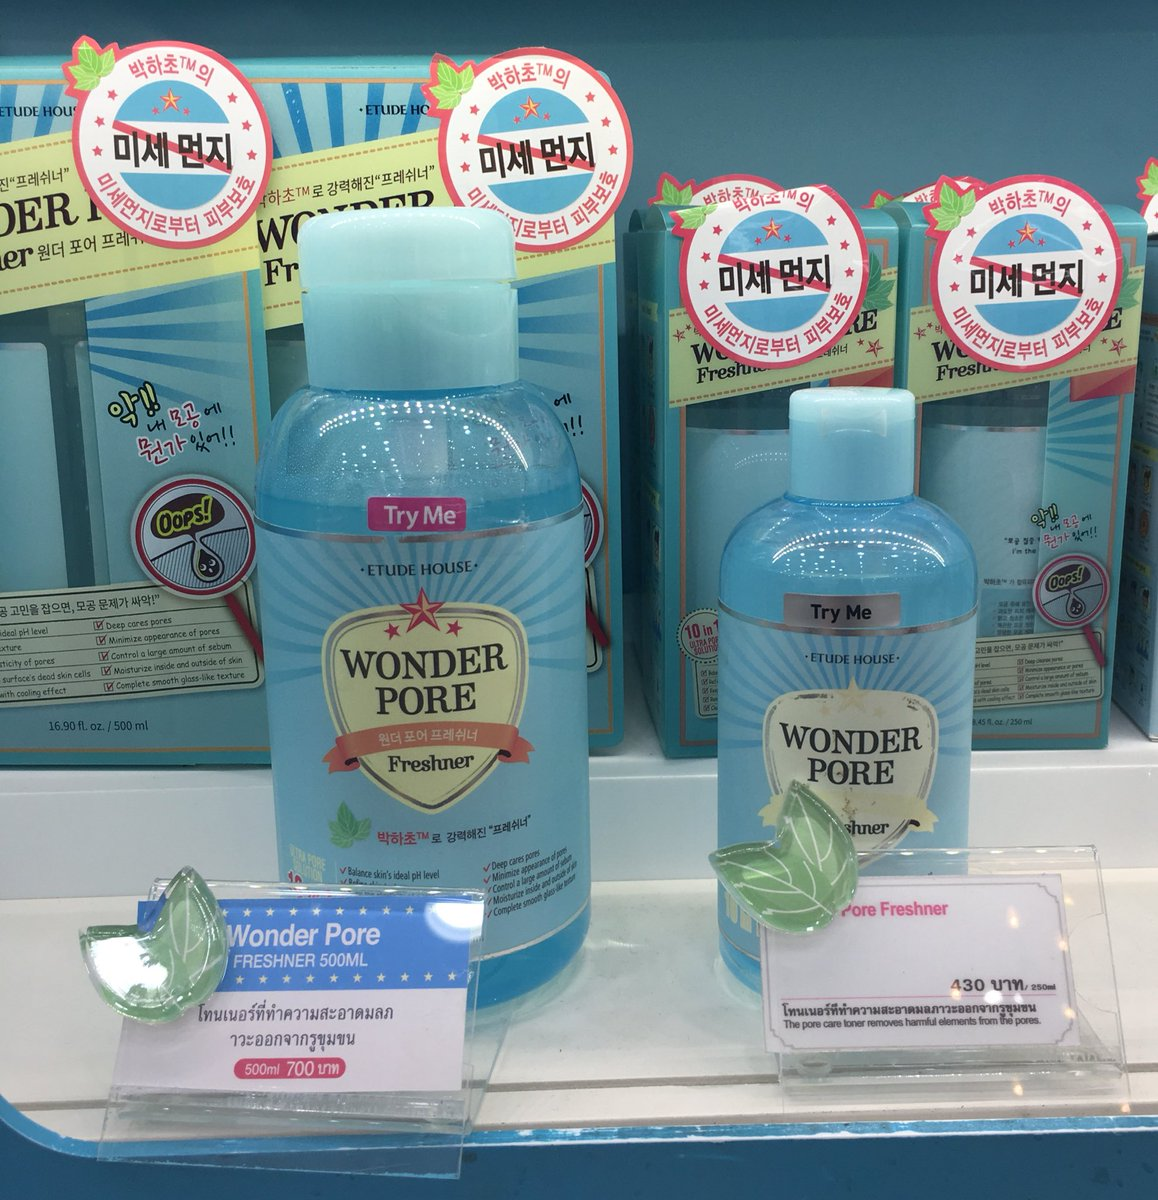 Pimzch On Twitter Etude Wonder Pore Freshner 250ml 250 500 Ml